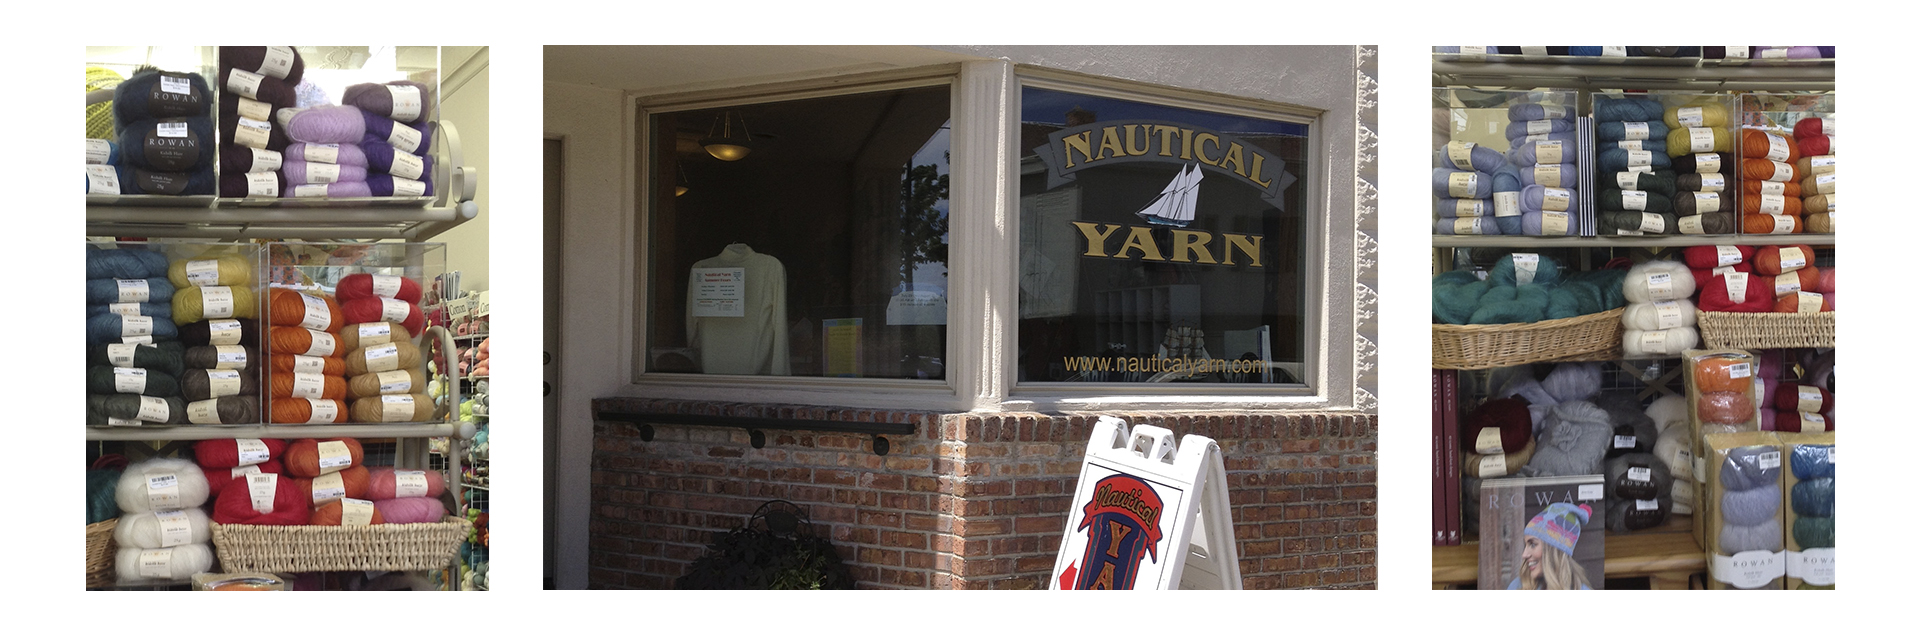 Nautical Yarn has been a source for Rowan yarns for almost 20 years.